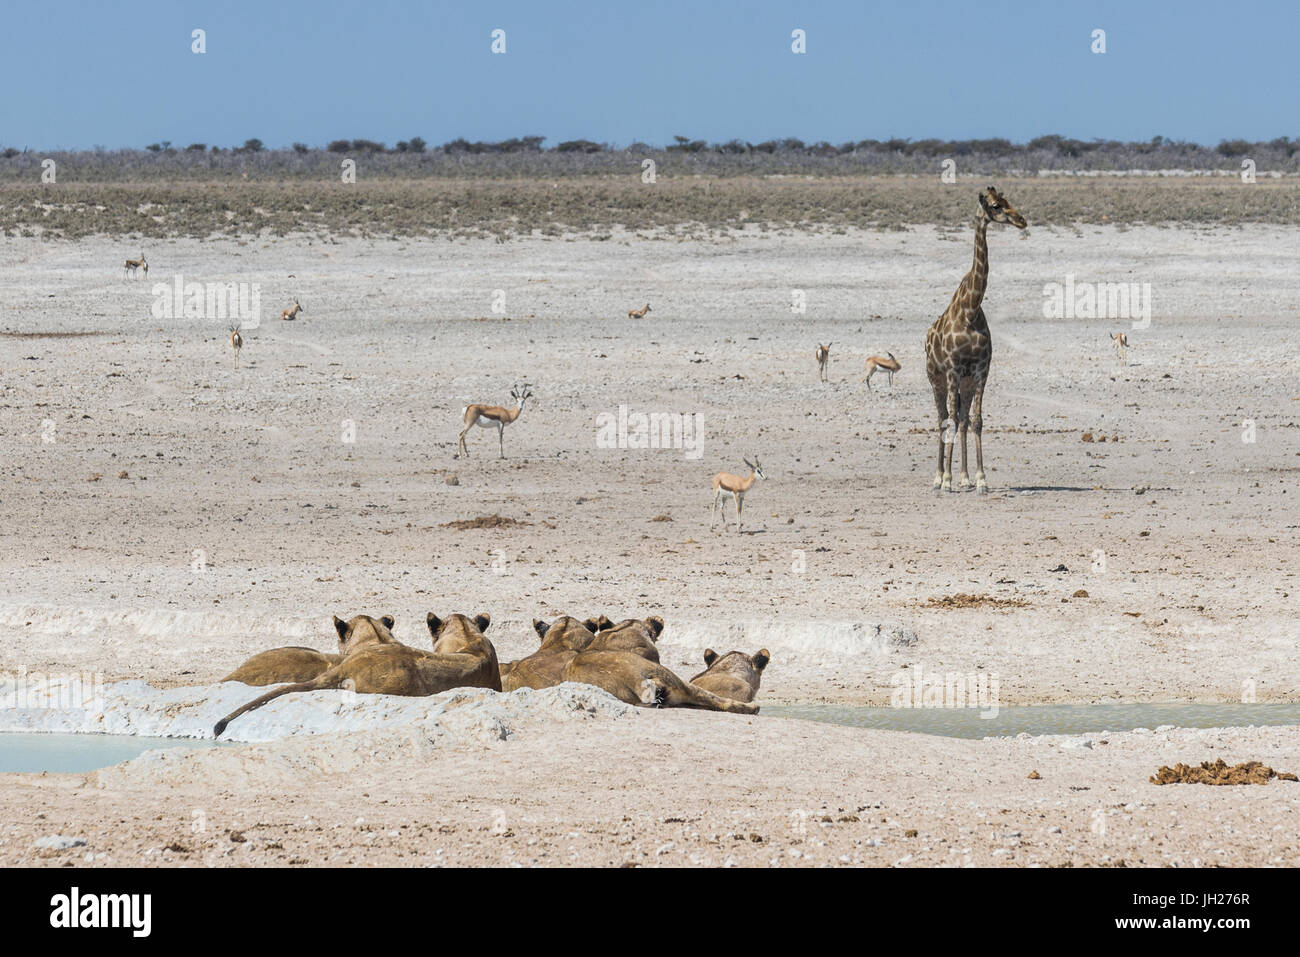 Lions (Panthera leo) at a waterhole in the Etosha National Park, Namibia, Africa - Stock Image